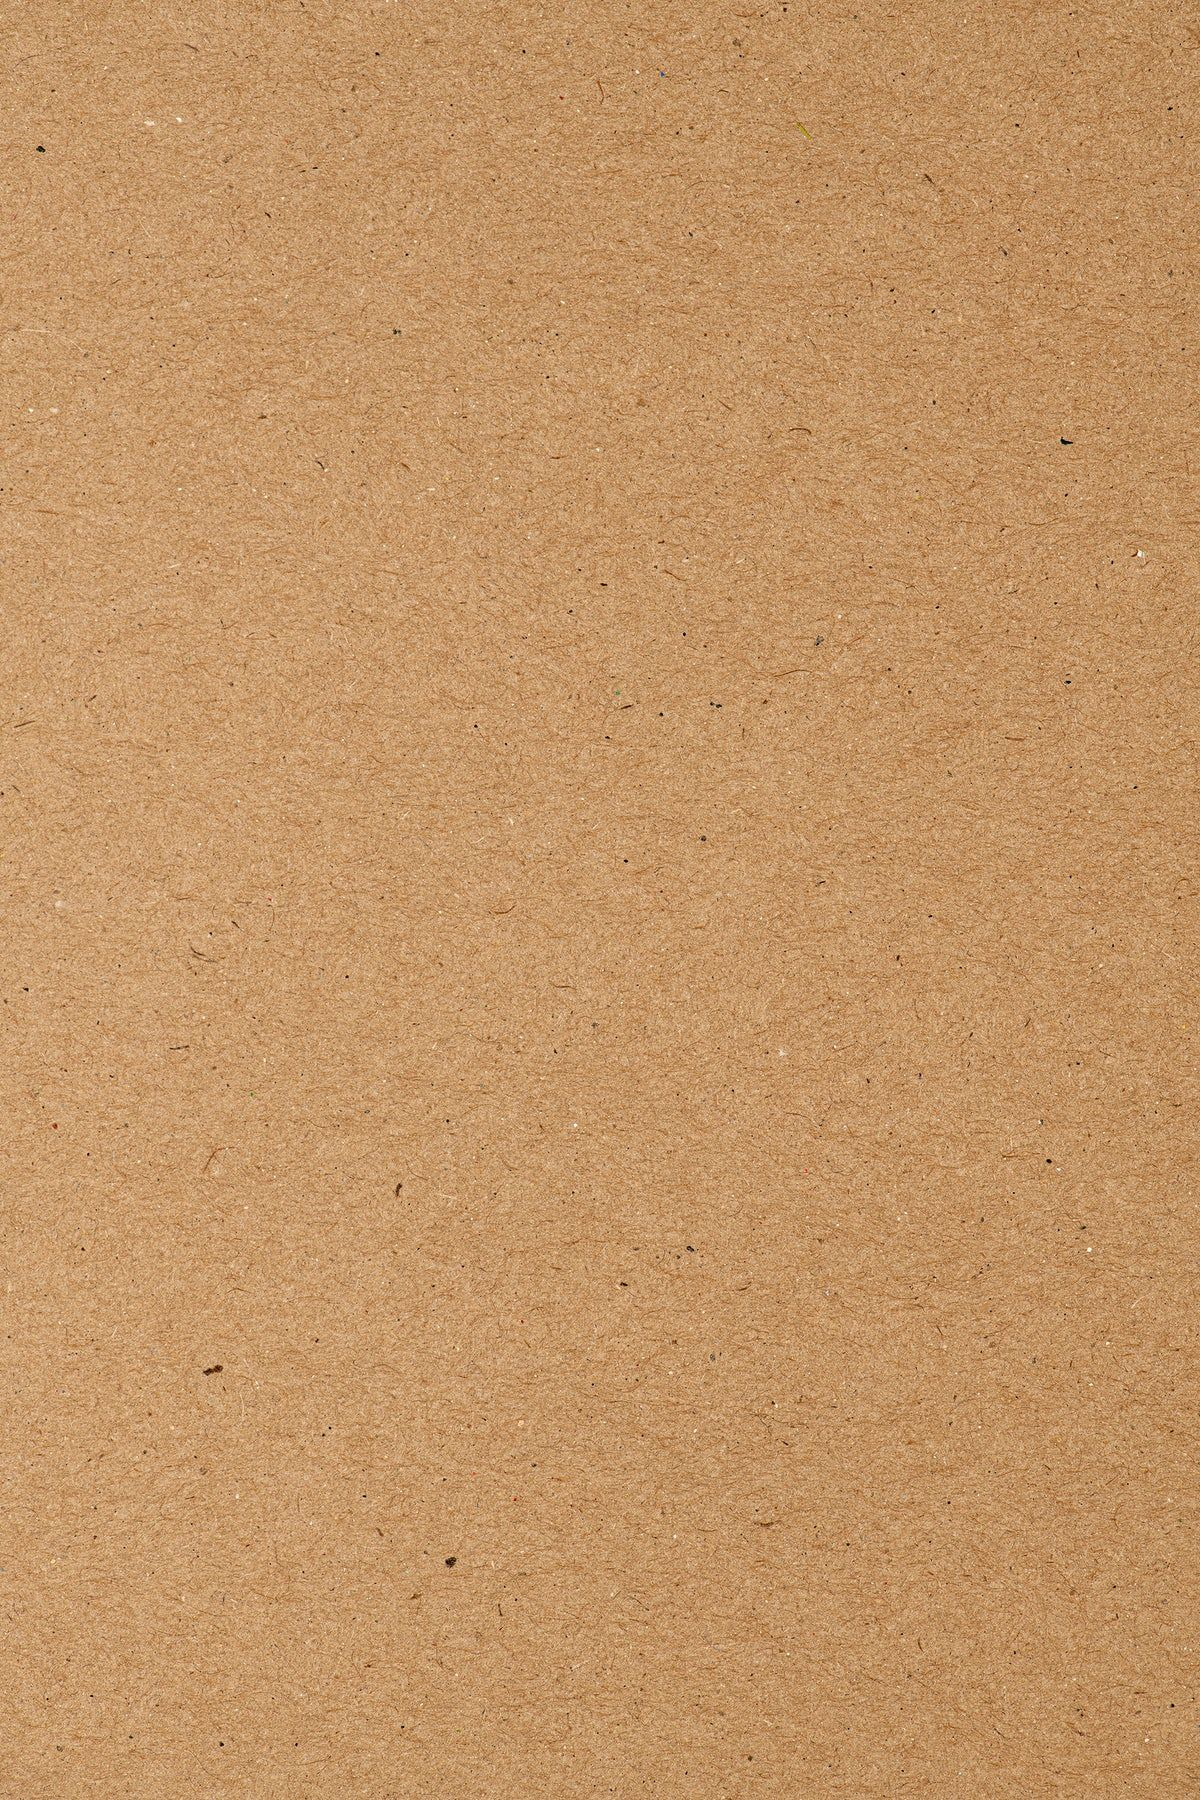 Download free image of Brown paper background text space by Kut about brown background plain, brown, brown paper background text space 2588336, backdrop, and background wallpaper 2588336